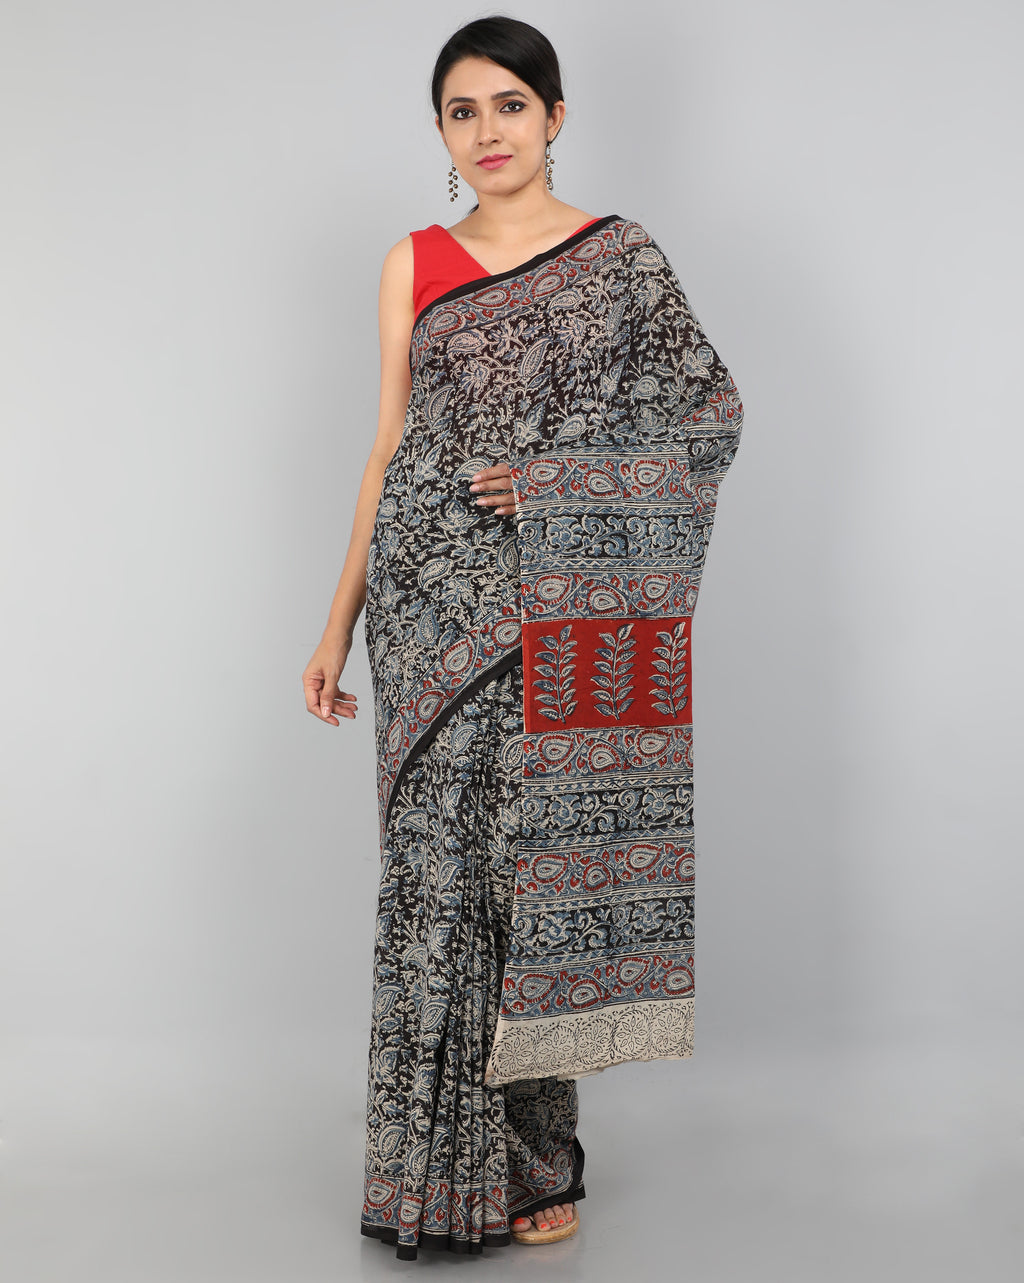 Pedana Kalamkari - Hand Block Printed - Mul Cotton Saree 07